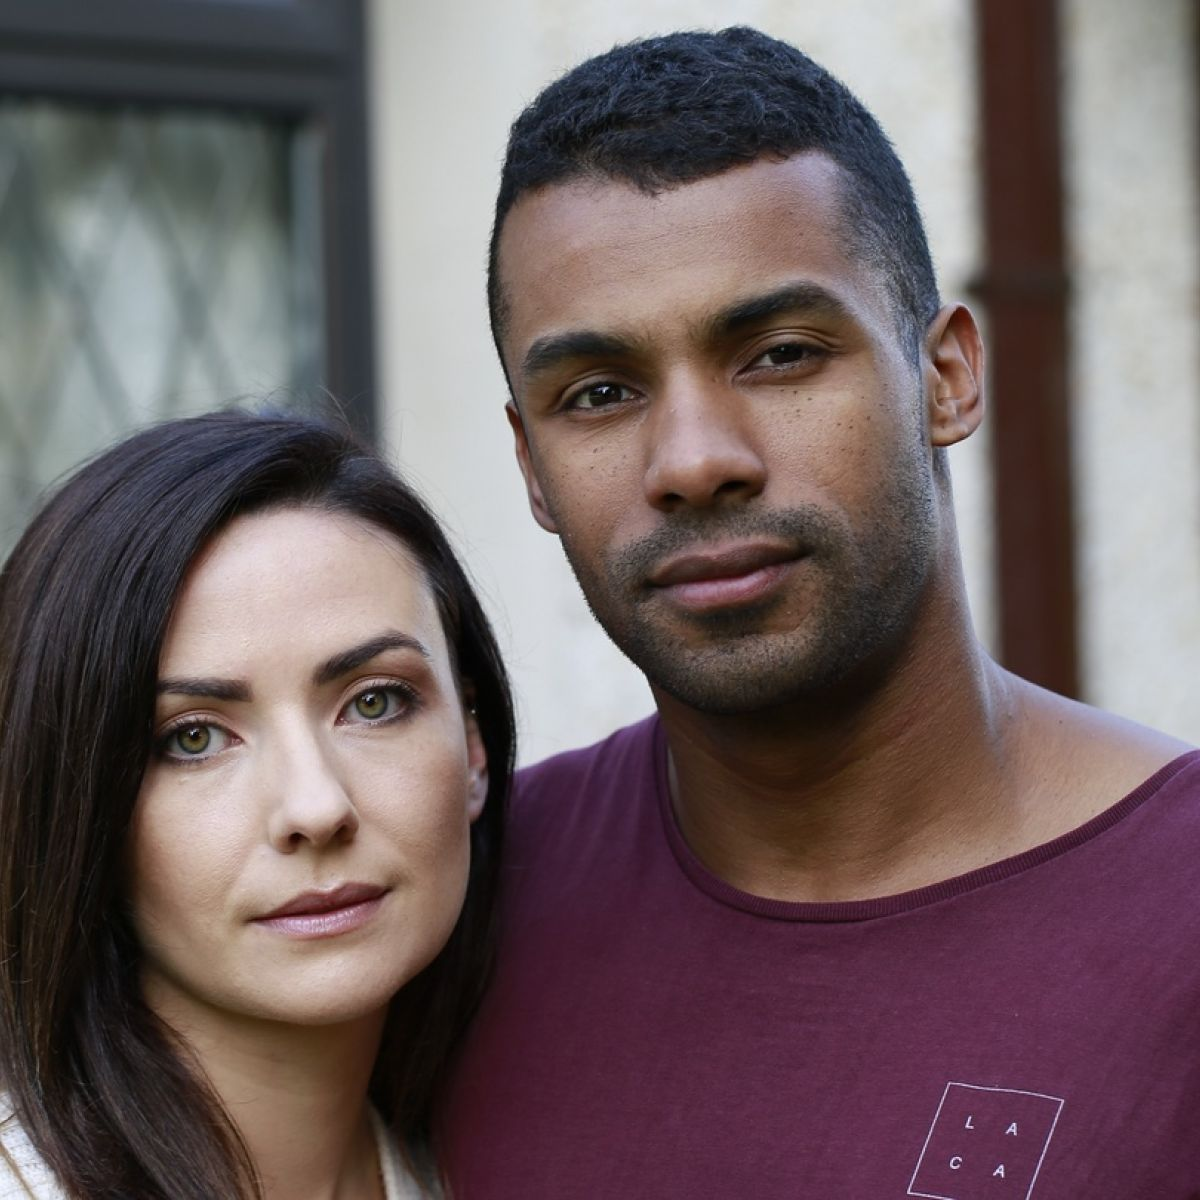 They called her a n***er lover: Irelands interracial couples